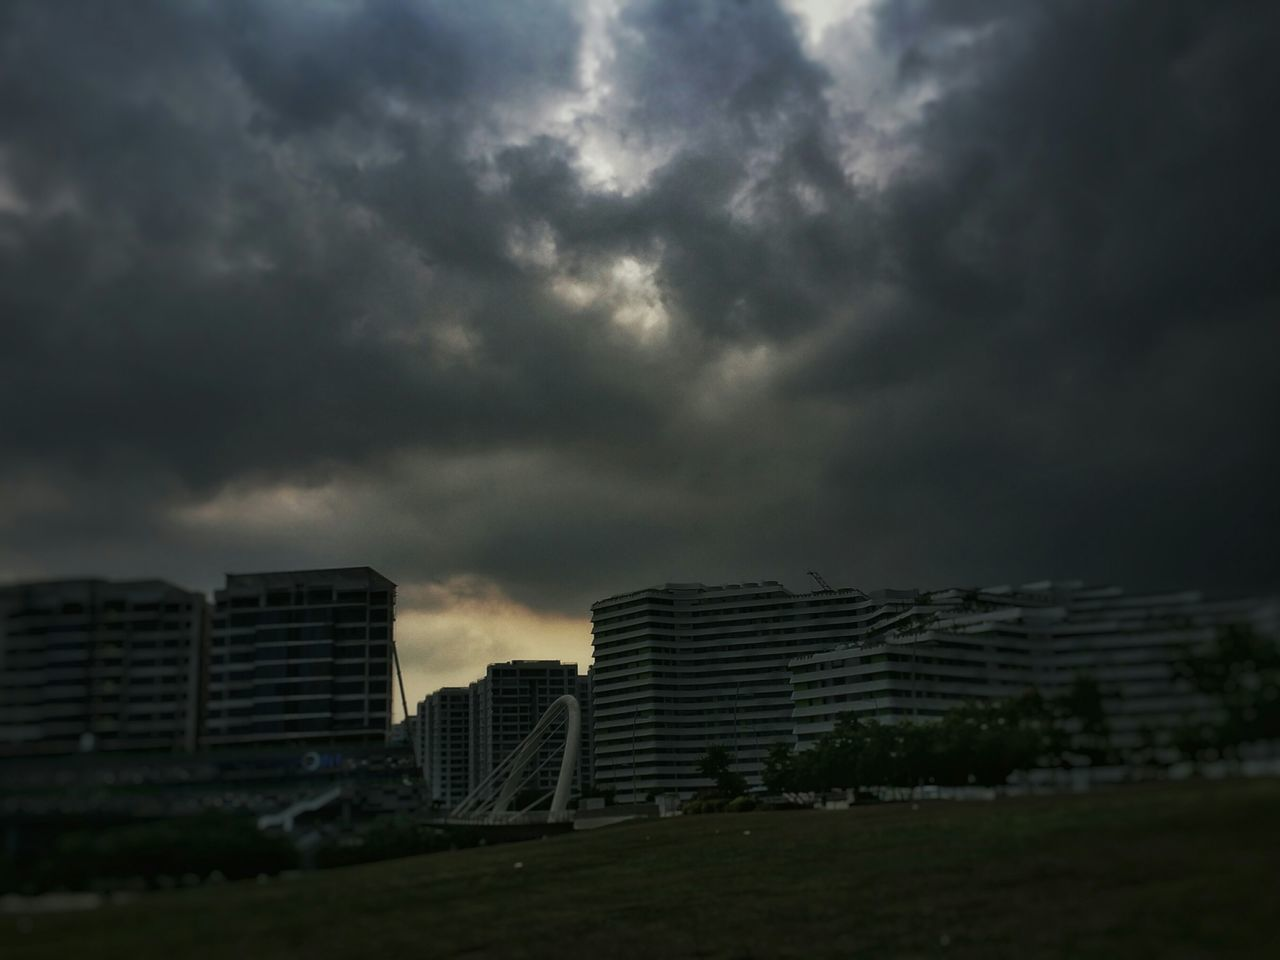 architecture, building exterior, cloud - sky, sky, built structure, skyscraper, city, outdoors, modern, storm cloud, no people, growth, day, cityscape, nature